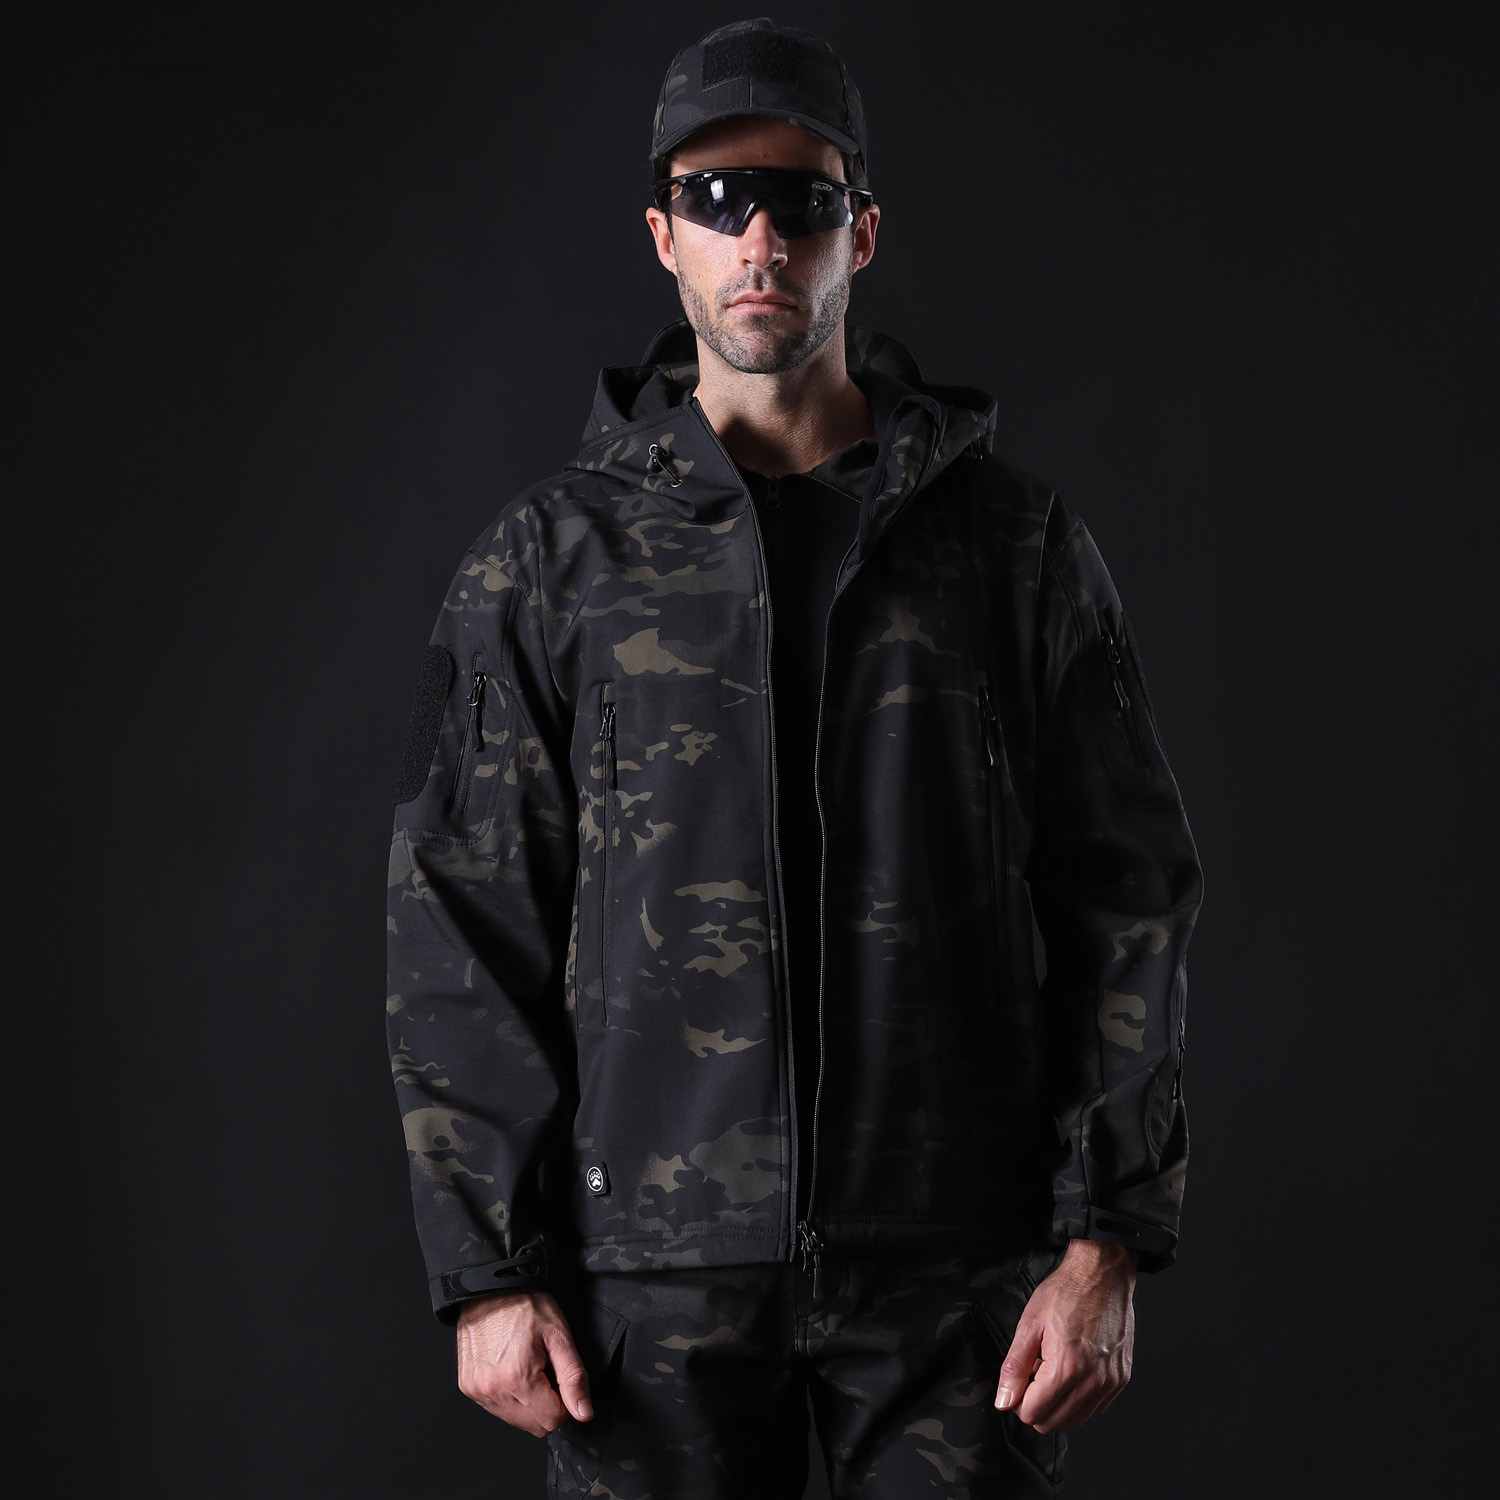 SJ-MAURIE Outdoor Men Military Tactical Hunting Jacket Waterproof Fleece Hunting Clothes Fishing Hiking Jacket Winter Coat New